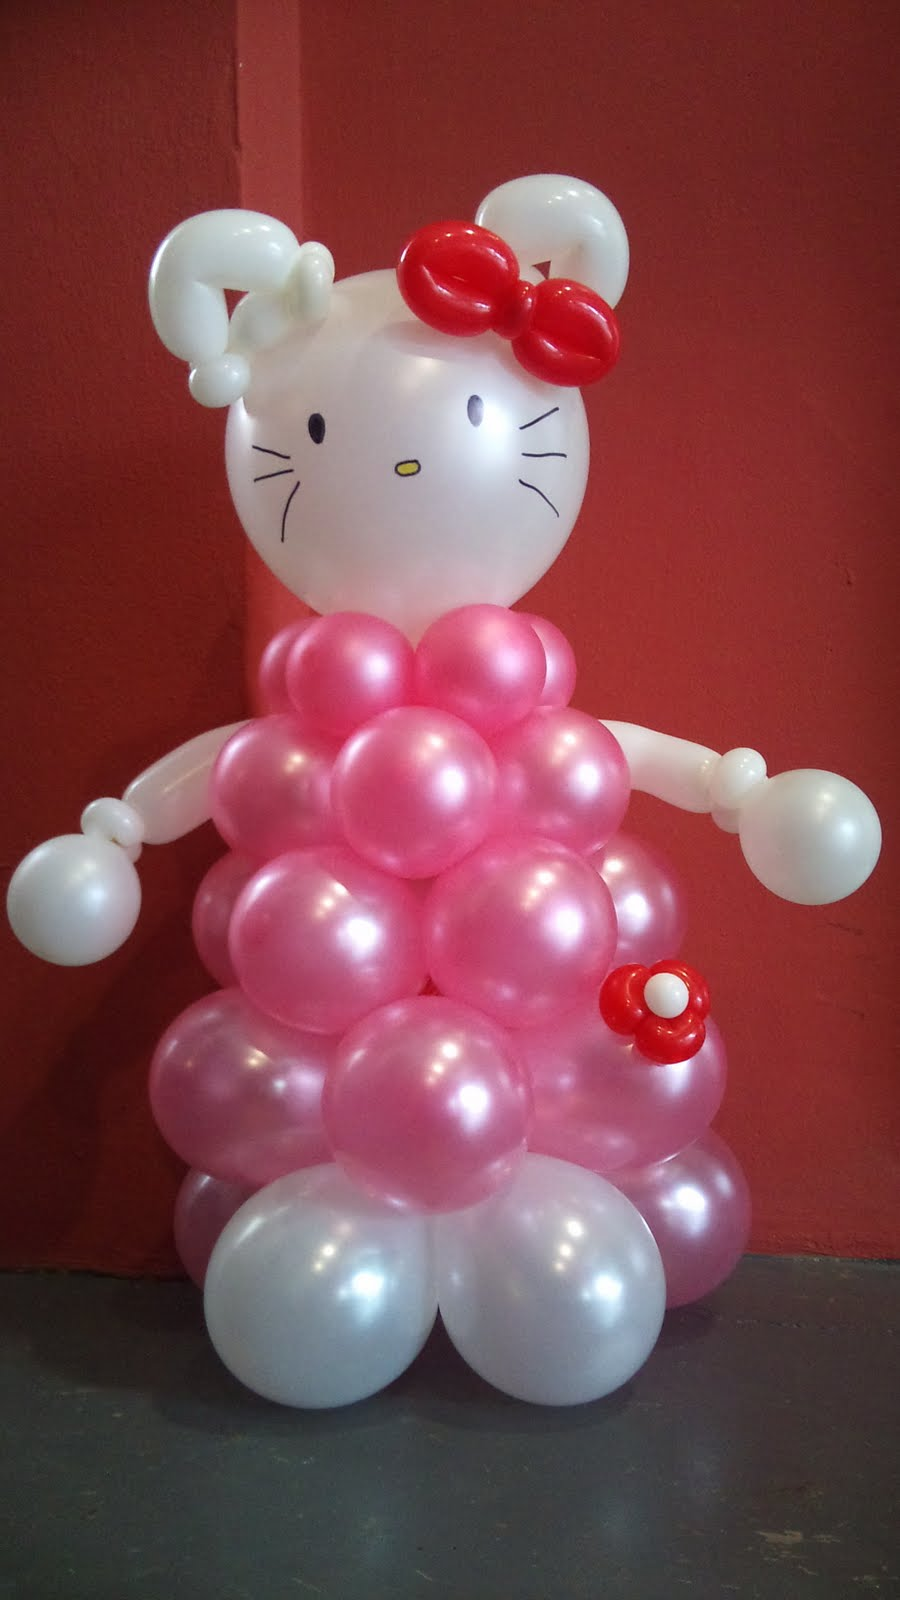 Balloon Sculpture Of A Large Birthday Cake